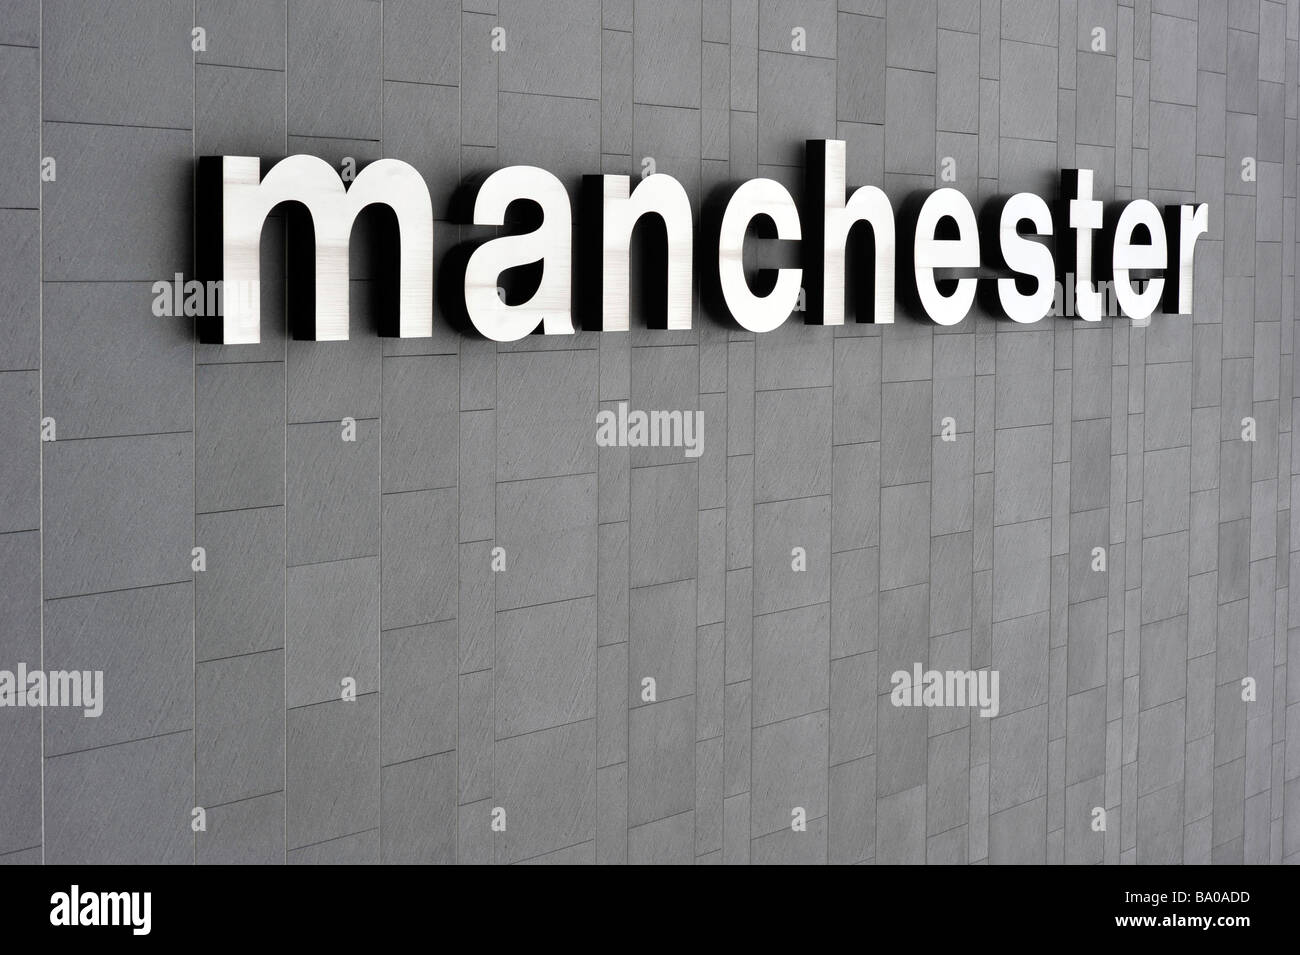 manchester sign grey wall - Stock Image